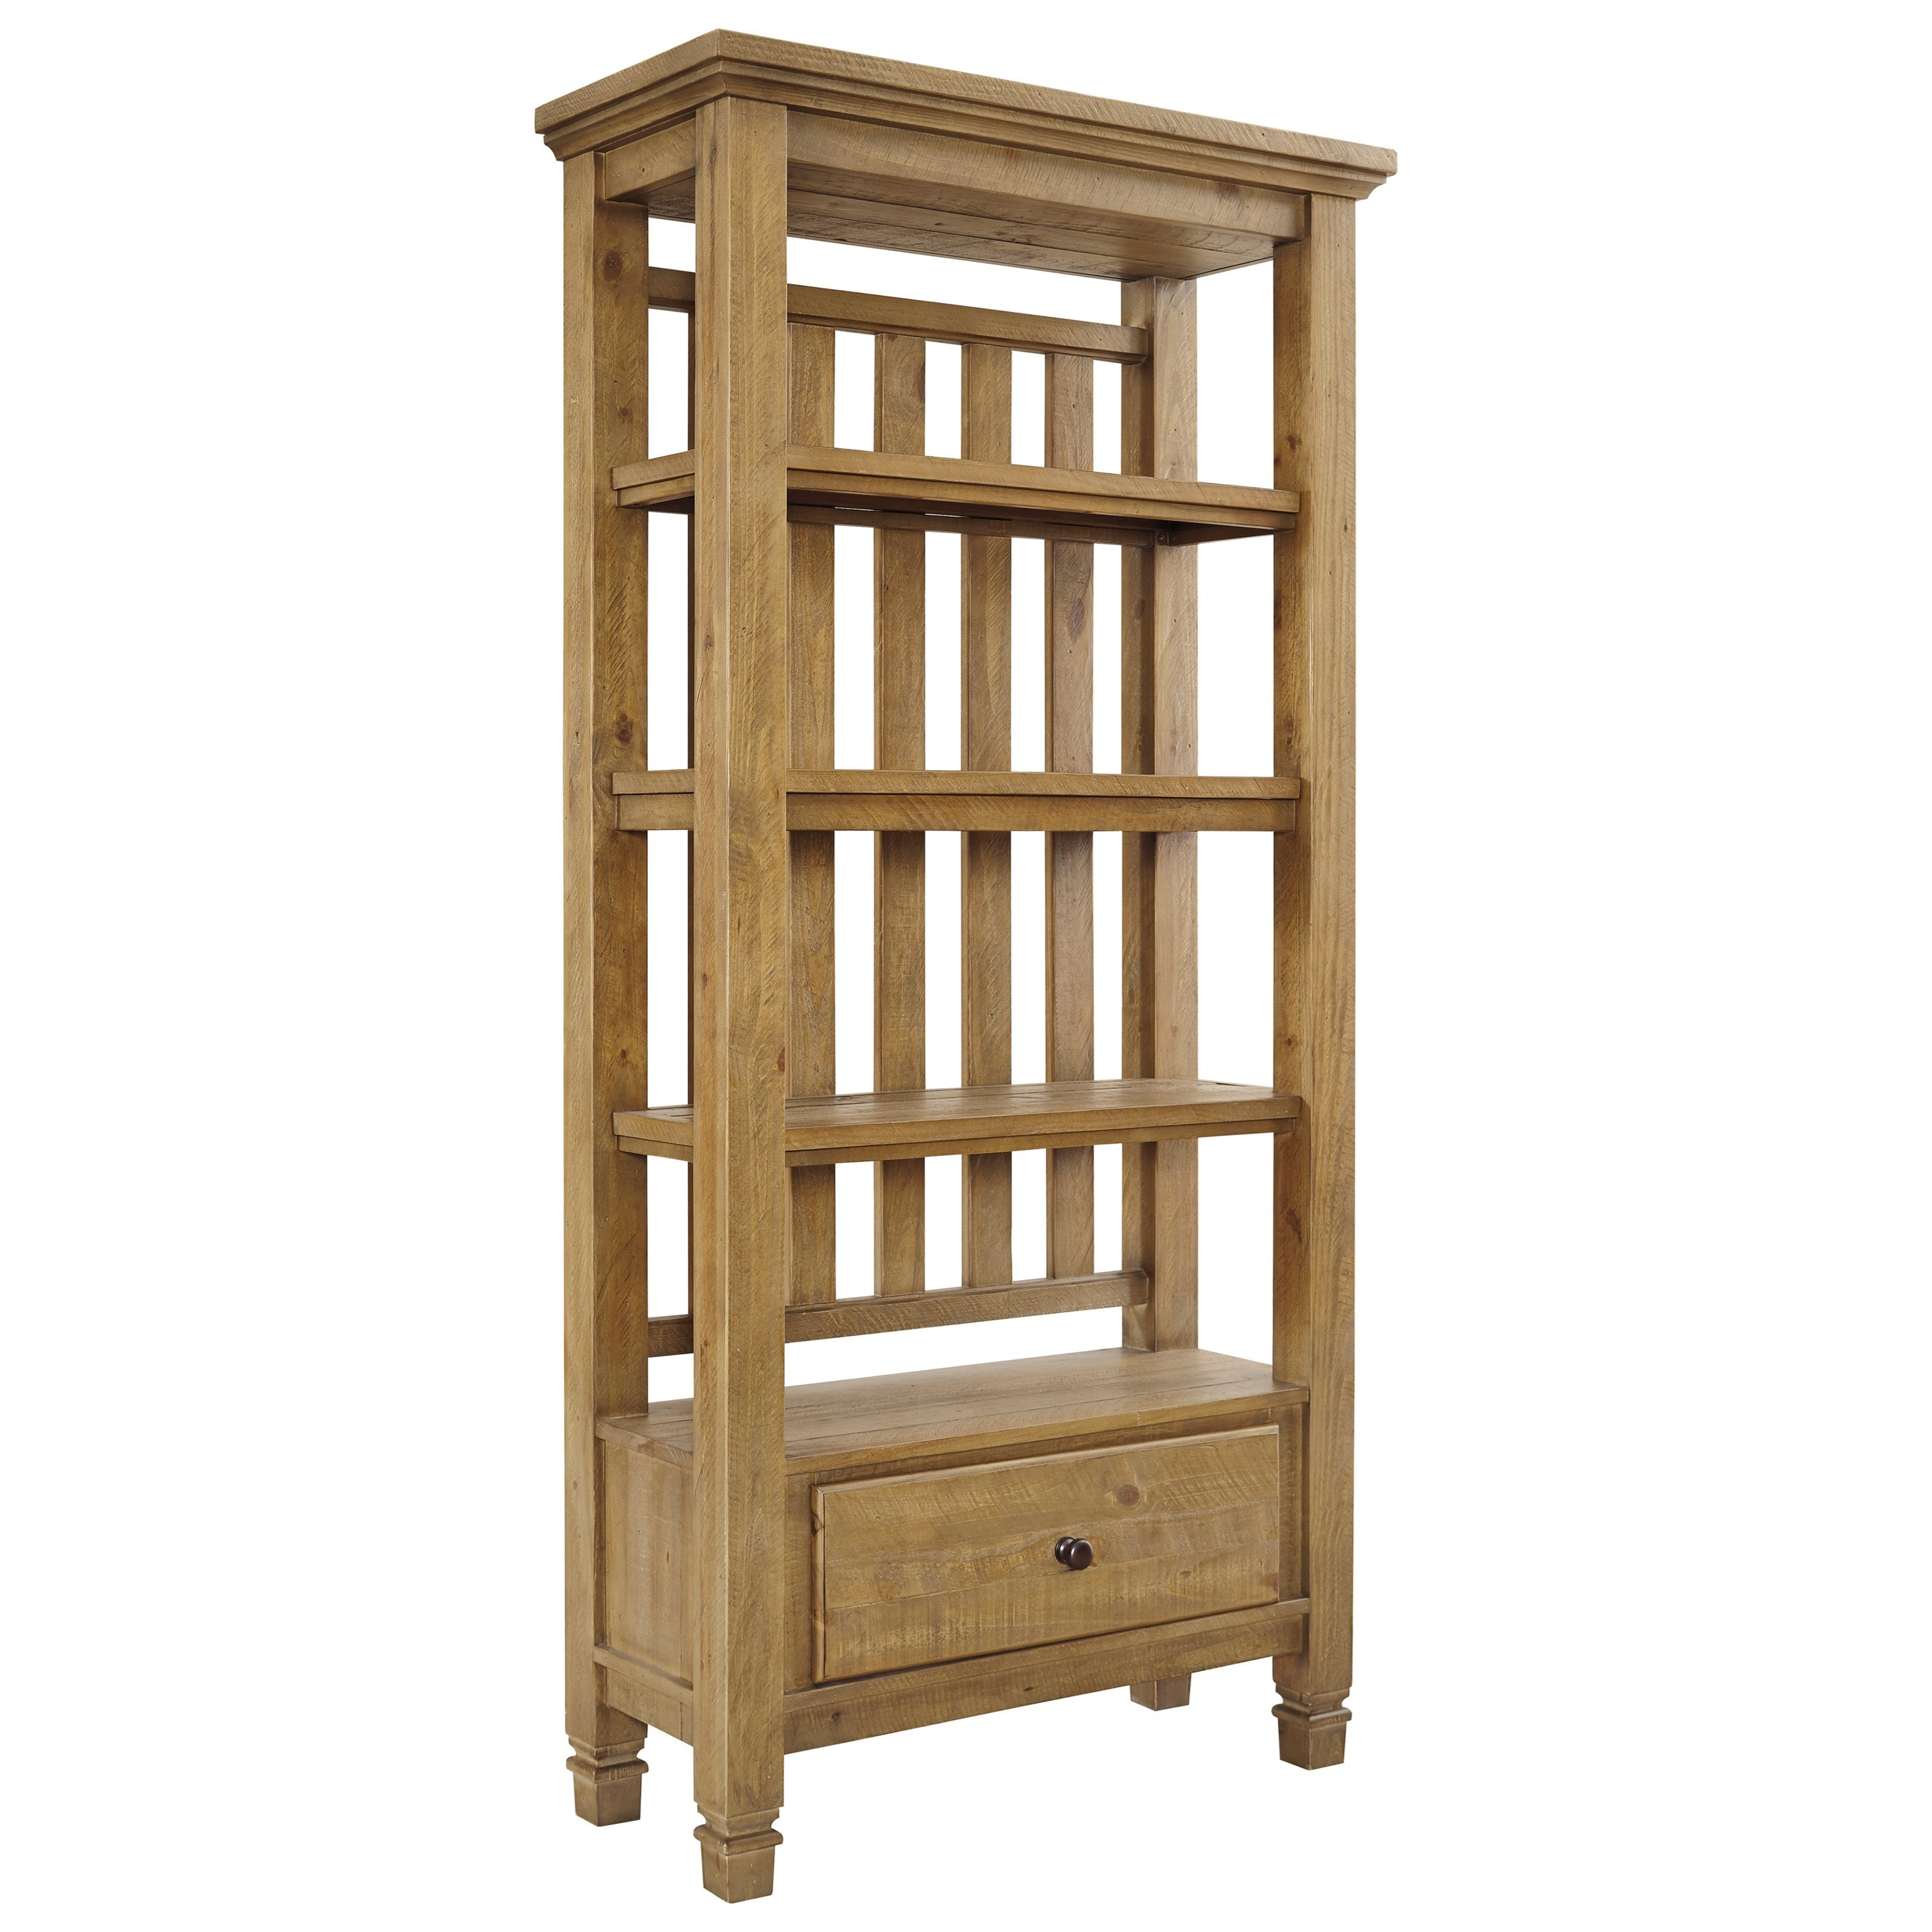 Signature Design by Ashley Trishley Pier Cabinet - Item Number: H659-60